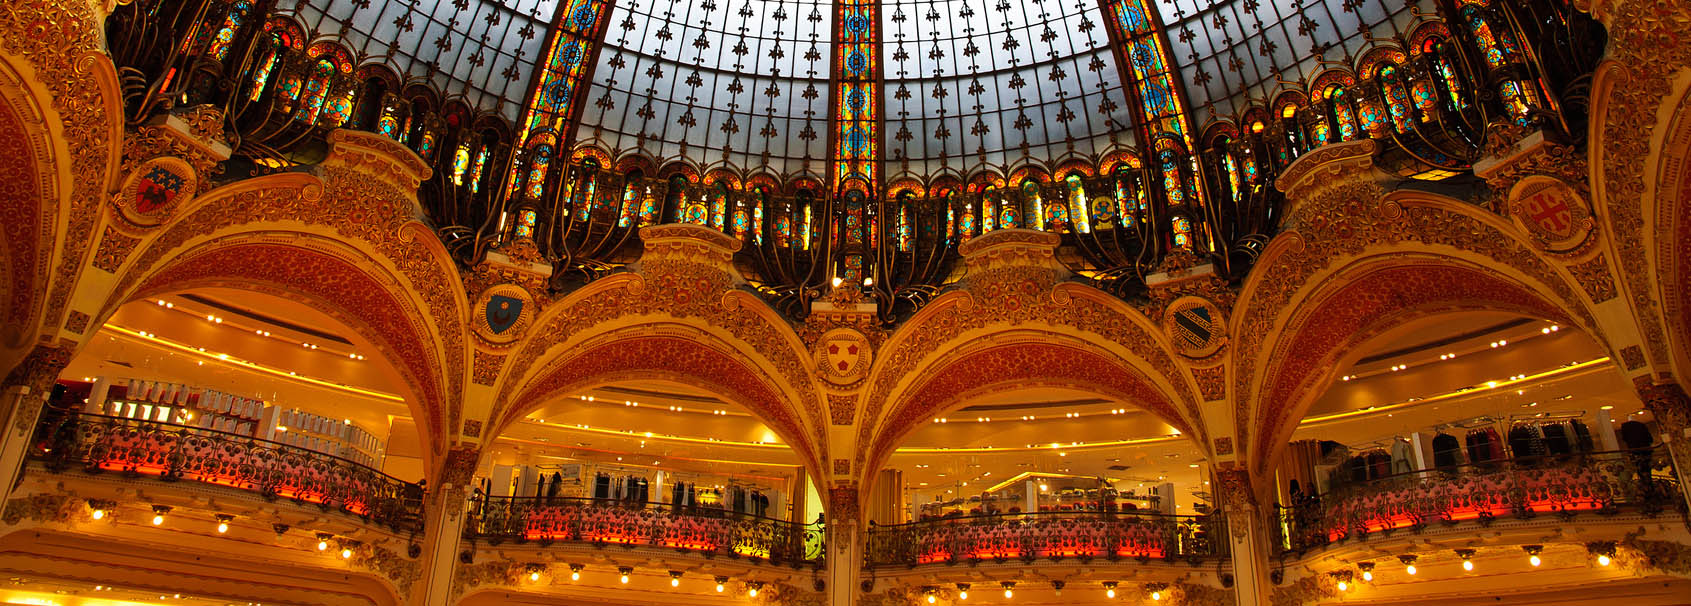 Inside the Lafayette luxury shopping mall in Paris